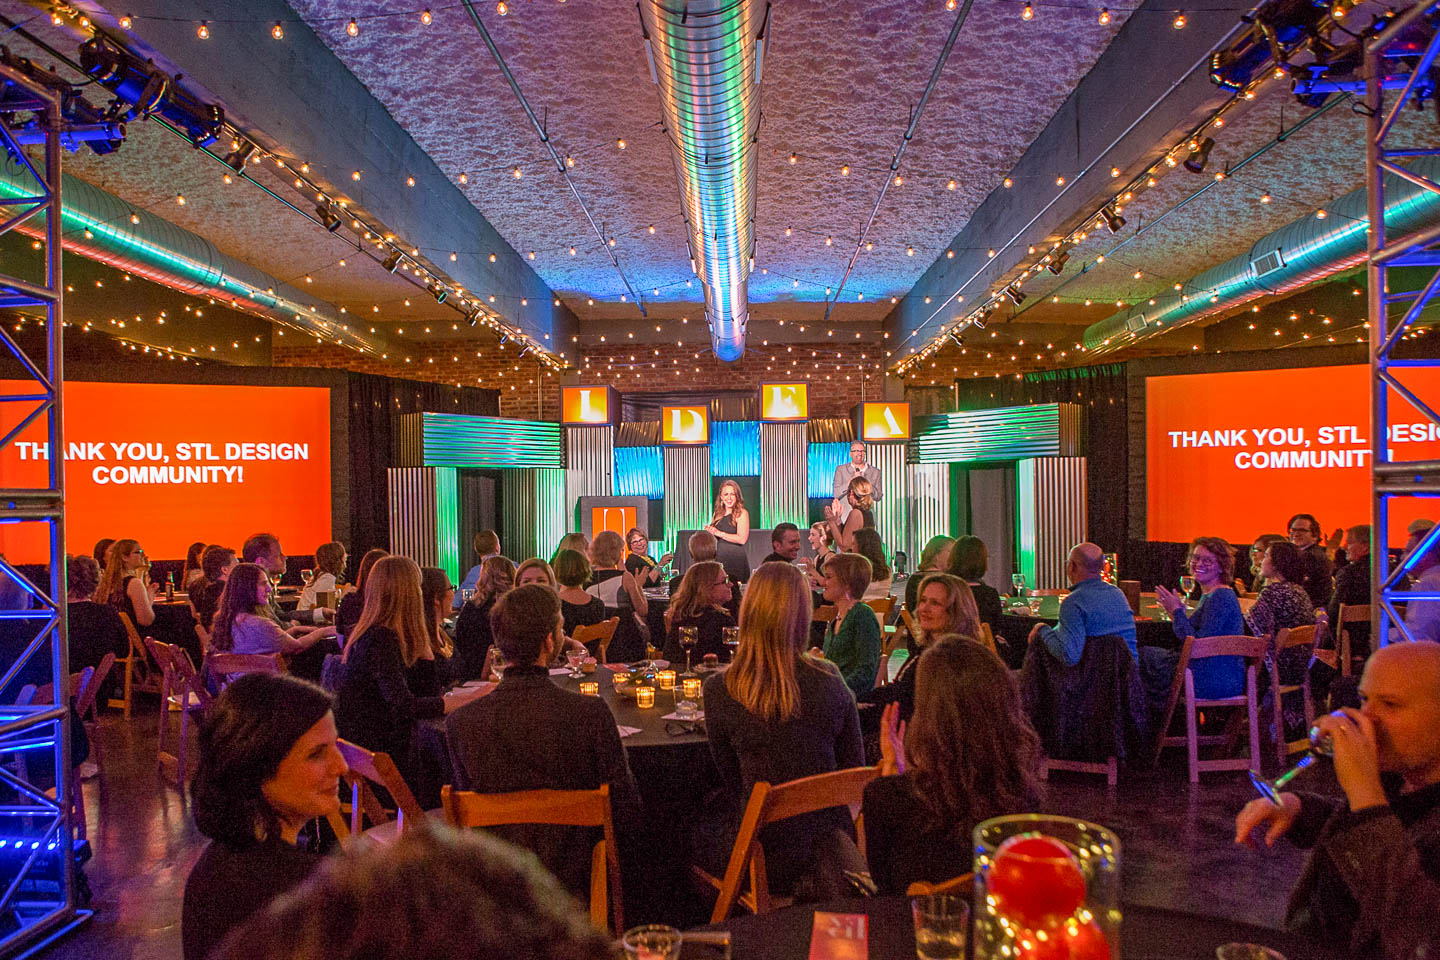 IDEA awards ceremony at NEO on Locust in St. Louis with staging and seated audience